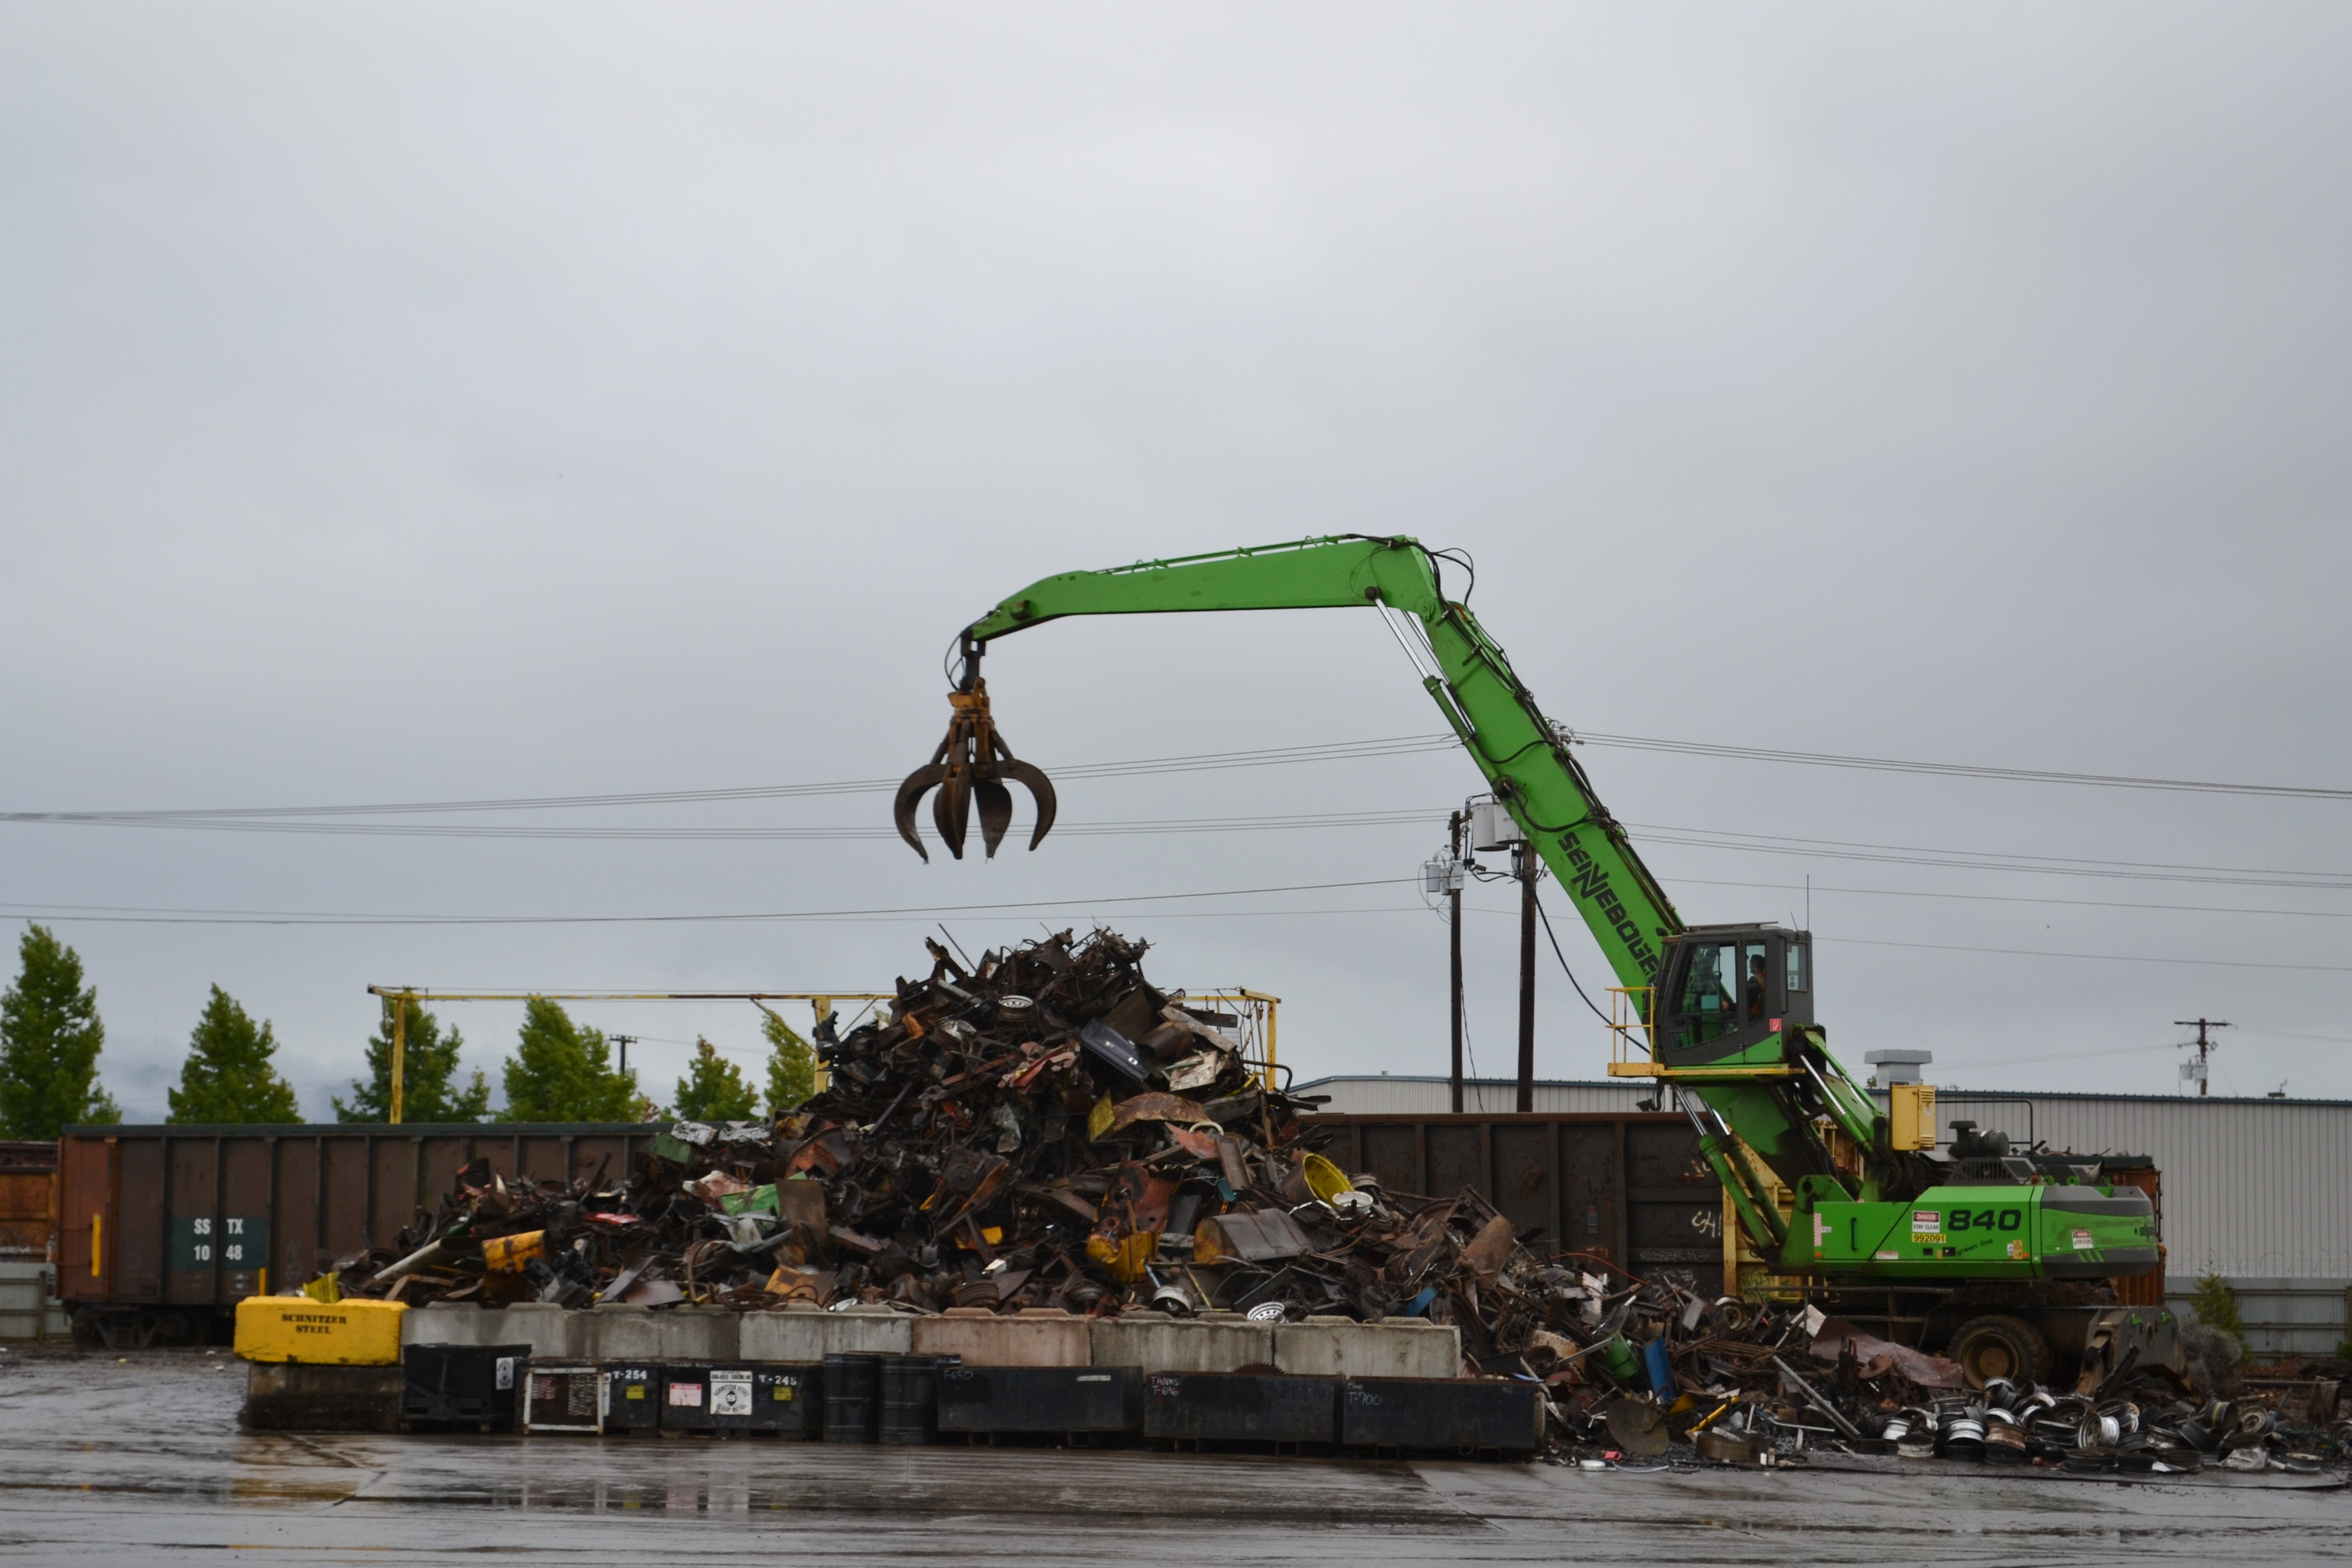 Scrap Yards For Used Cars In Panama City Beach